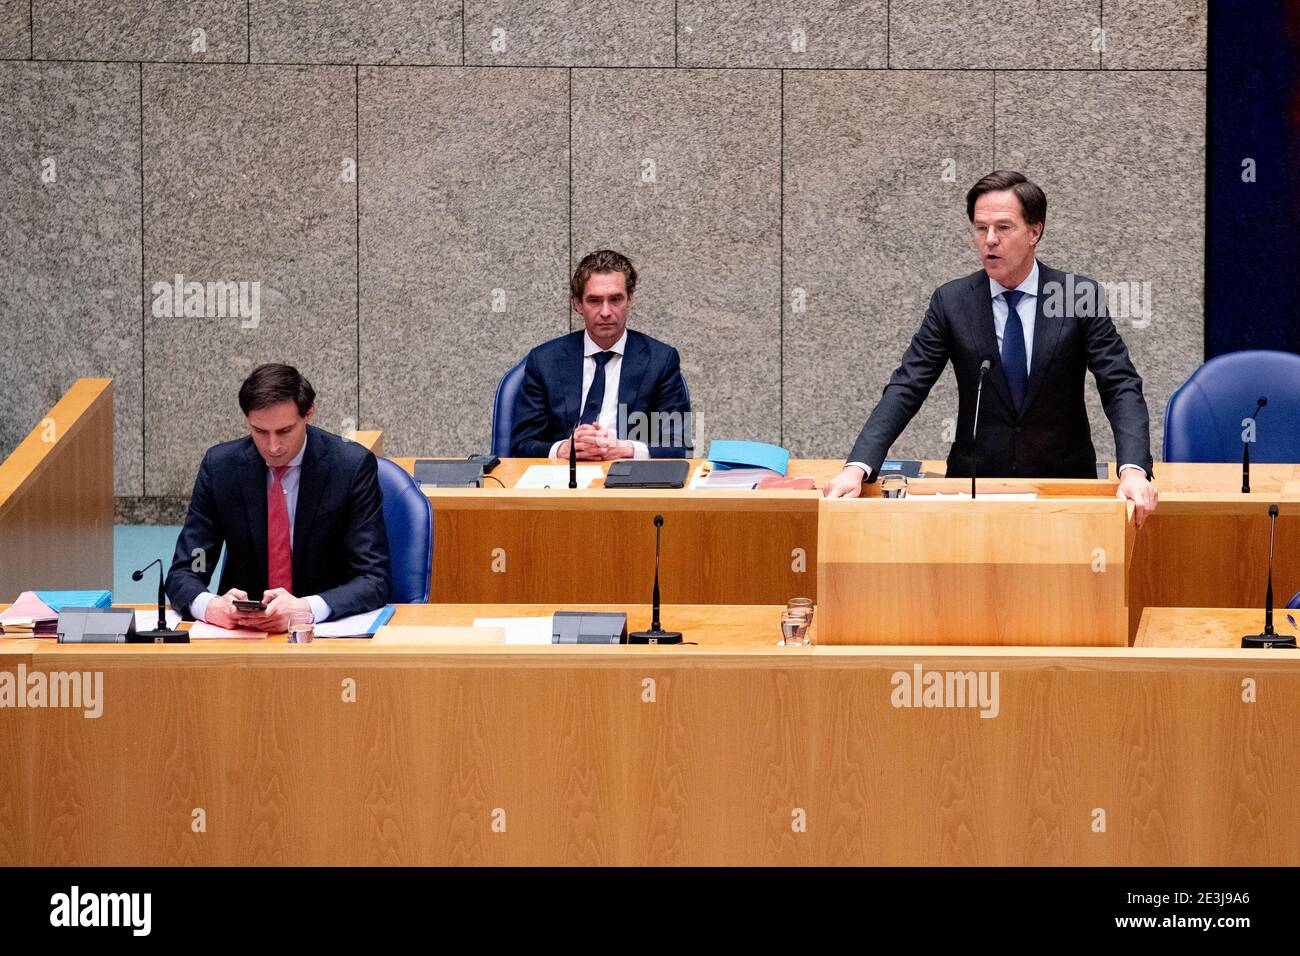 https www alamy com the hague netherlands january 19 prime minister mark rutte is seen during the debate about his declaration on the resignation of the dutch cabinet on january 19 2021 in the hague netherlands the rutte administration stepped down last friday as a result of the childcare allowance scandal in which many parents were wrongfully labelled as fraudulent by the national tax services photo by niels wenstedtbsr agencyalamy live news image398084910 html